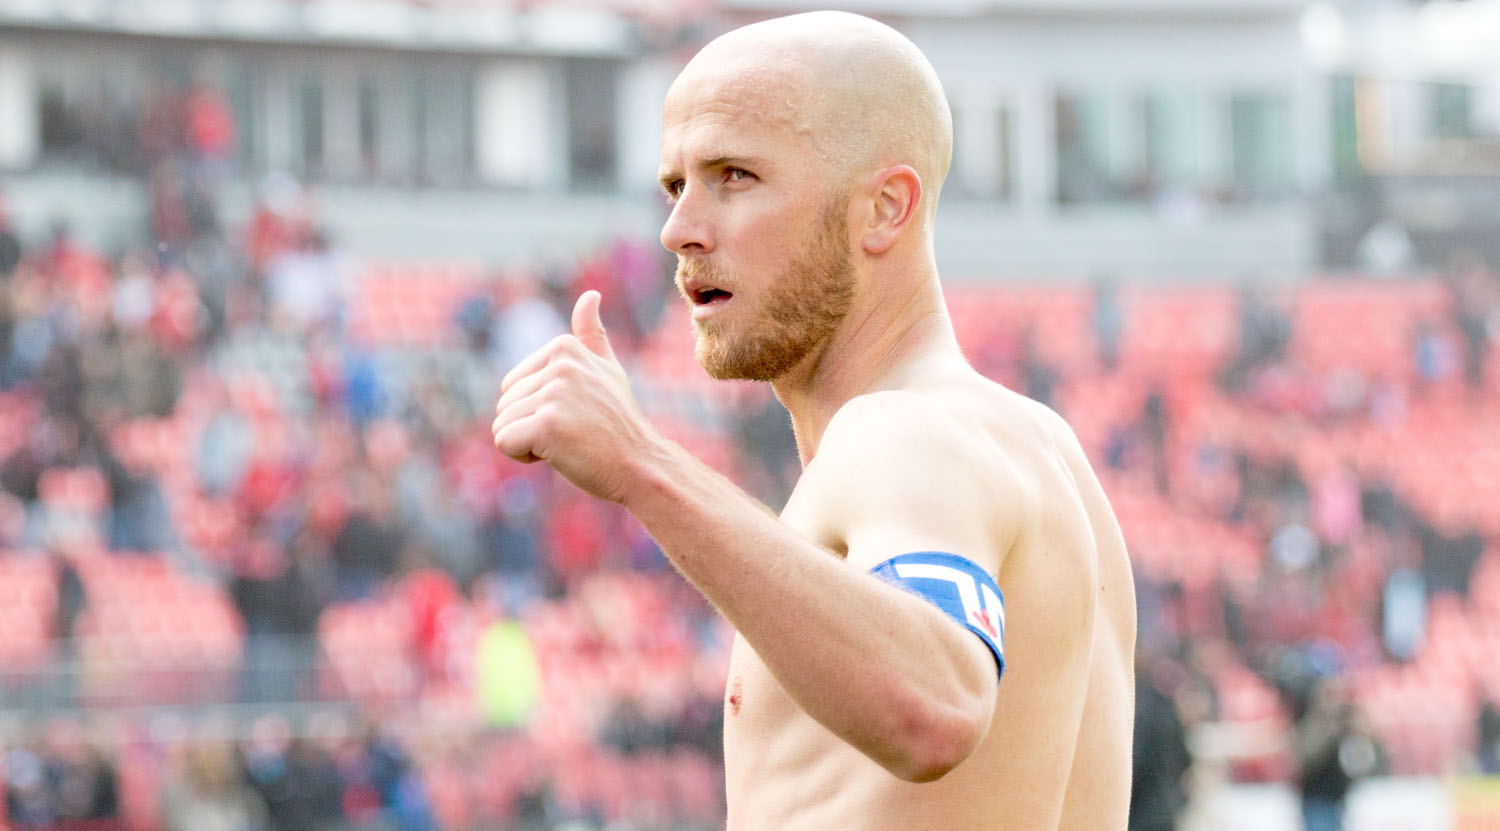 Michael Bradley giving the thumbs up to fans with the Toronto Flag captain armband after a beautiful 3-2 win over Minnesota United FC. Image by Dennis Marciniak of denMAR Media.